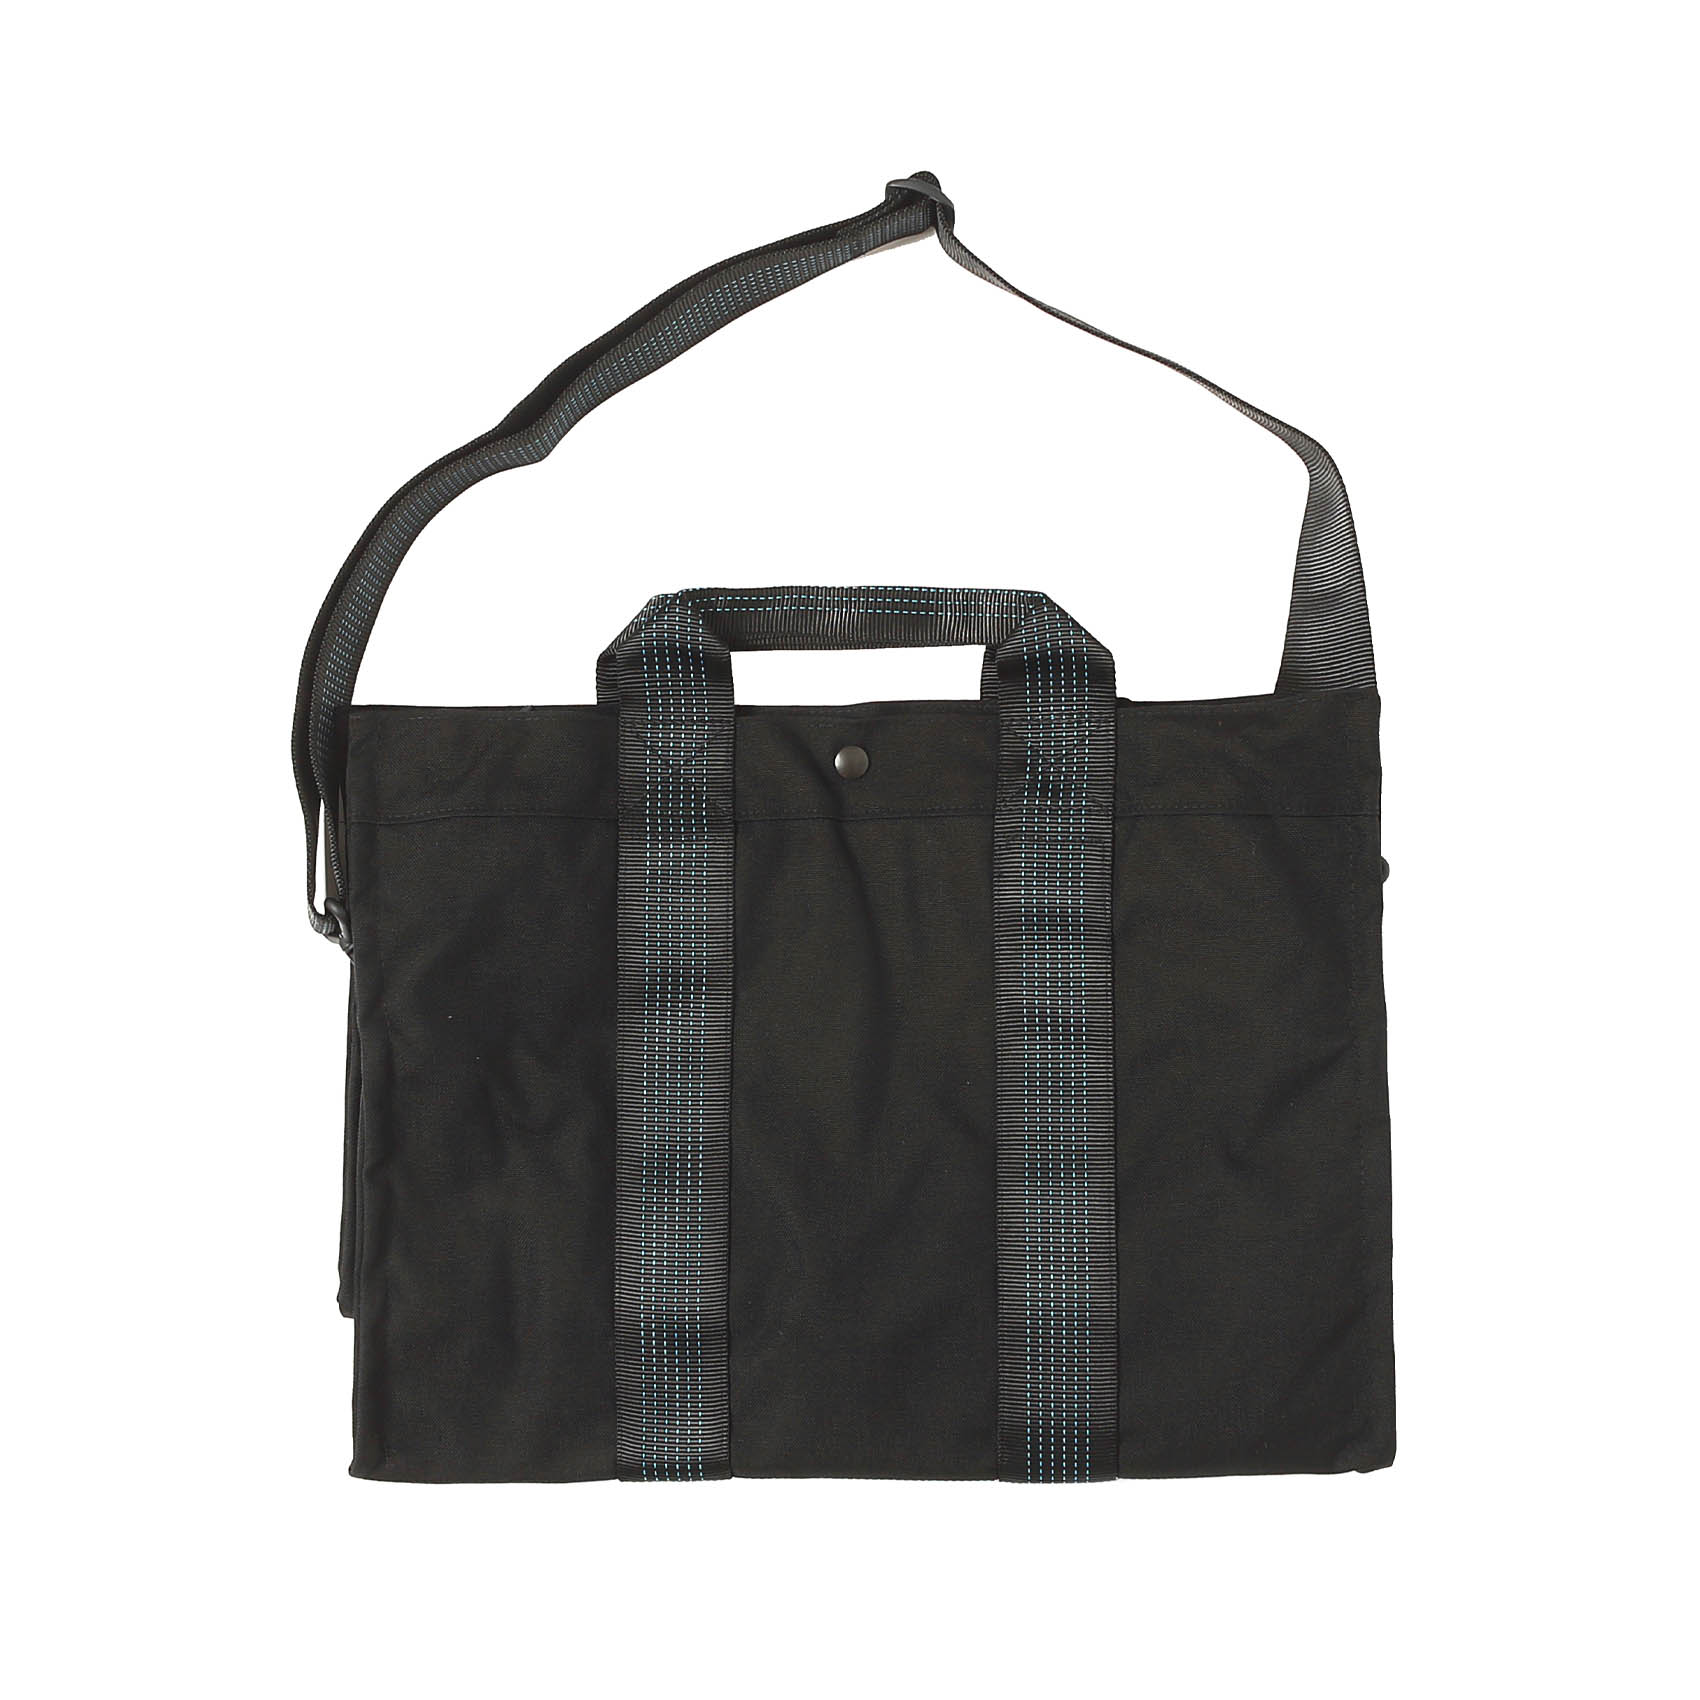 TRAVEL BAG W/SHOULDER STRAP - RAVEN